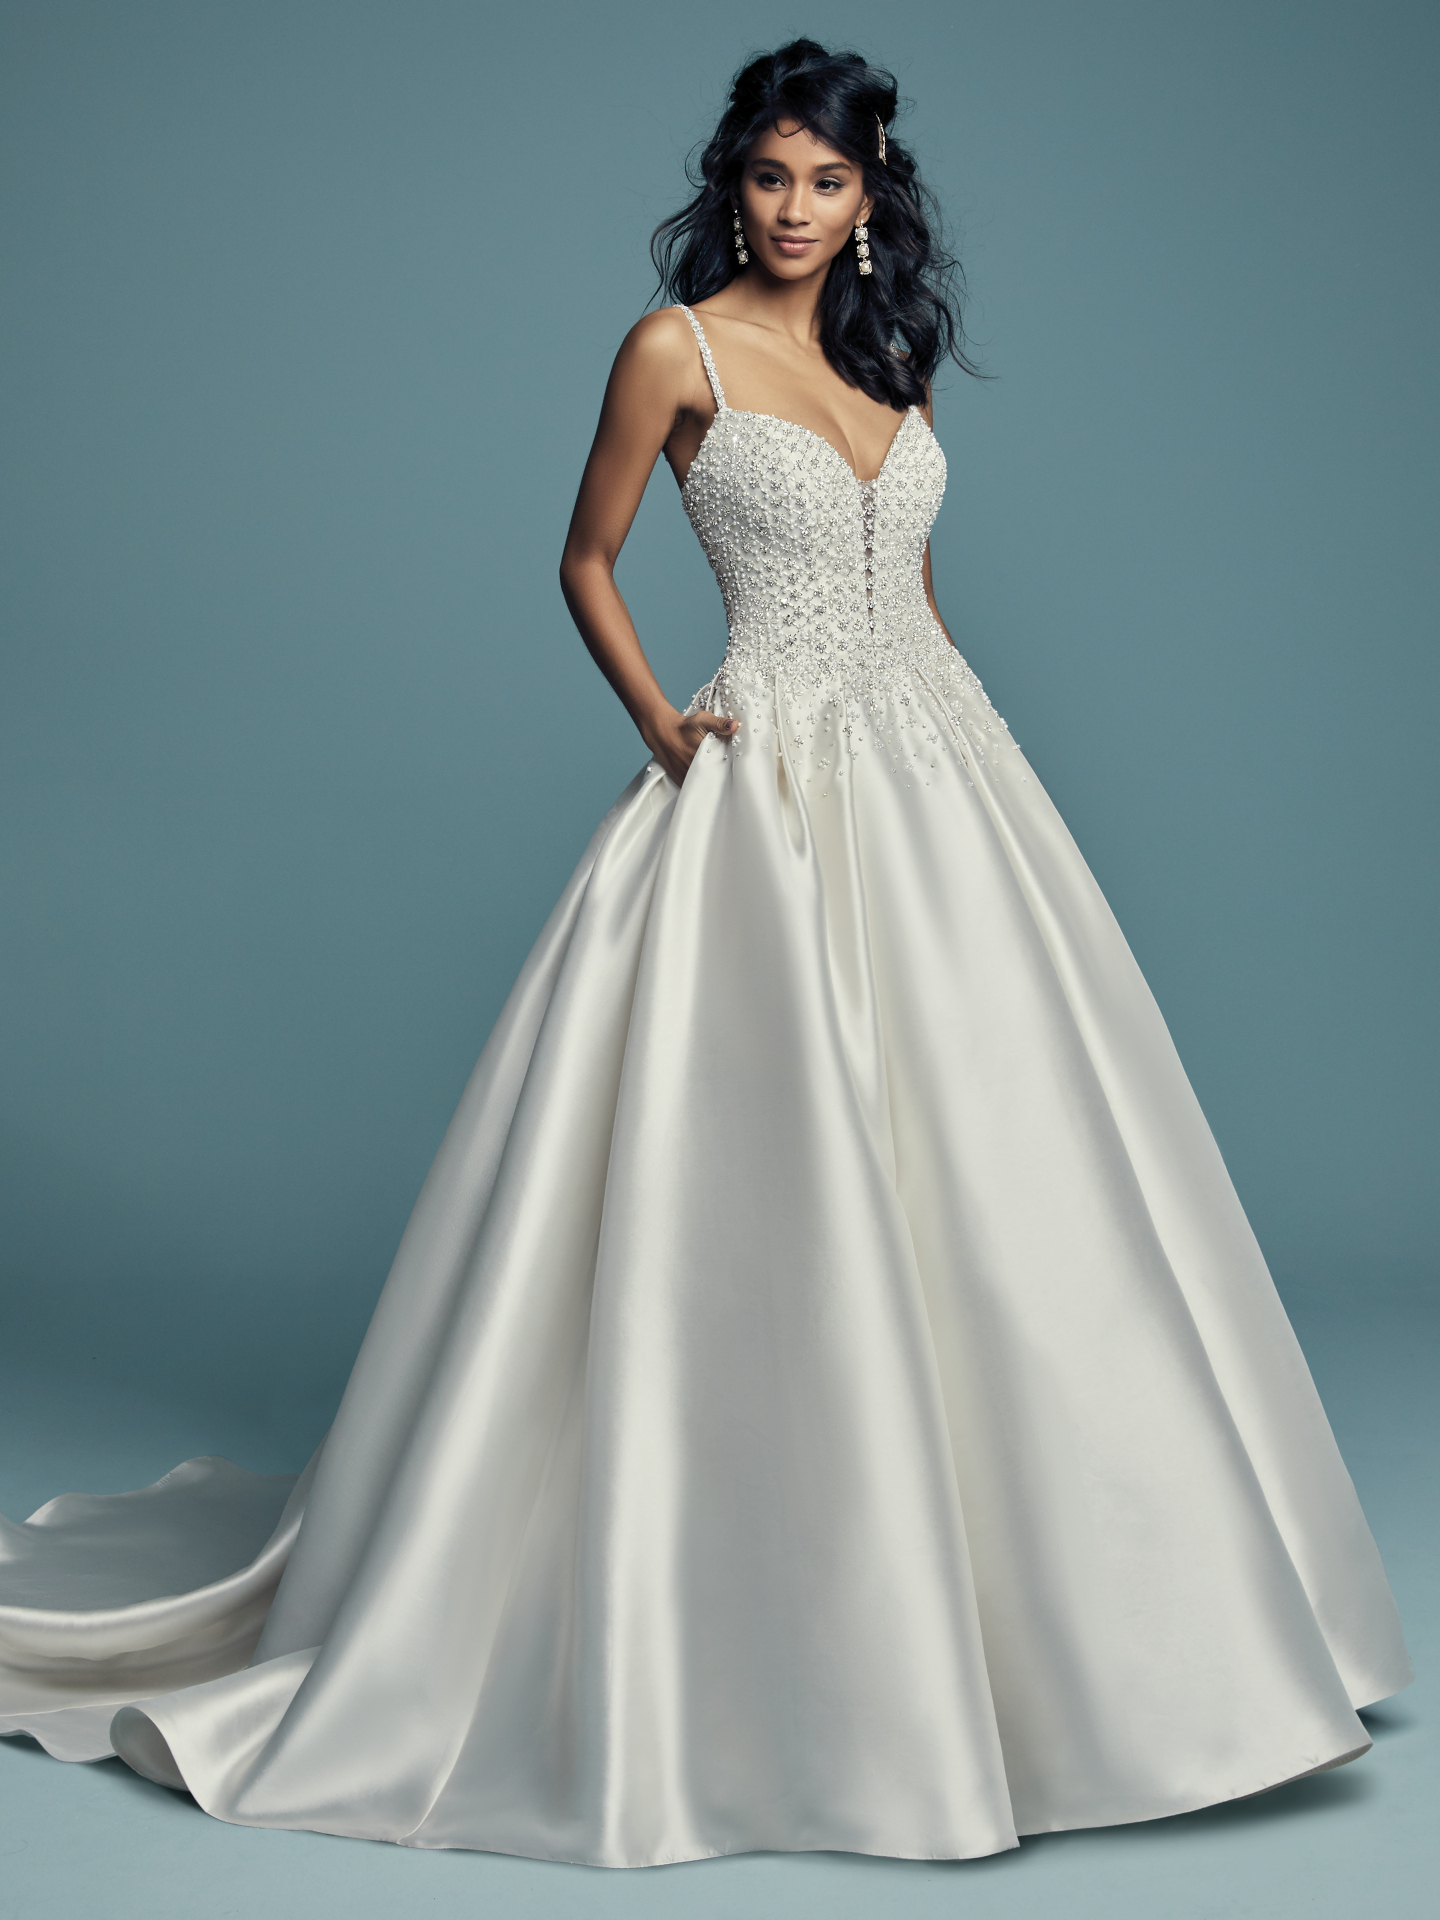 Dana by Maggie Sottero. Delicate beaded motifs adorn the bodice of this Elodie Mikado princess wedding dress, drifting into a billowing ballgown skirt with pockets. Beaded spaghetti straps complete the illusion plunging sweetheart neckline. Finished with crystal buttons over zipper closure.